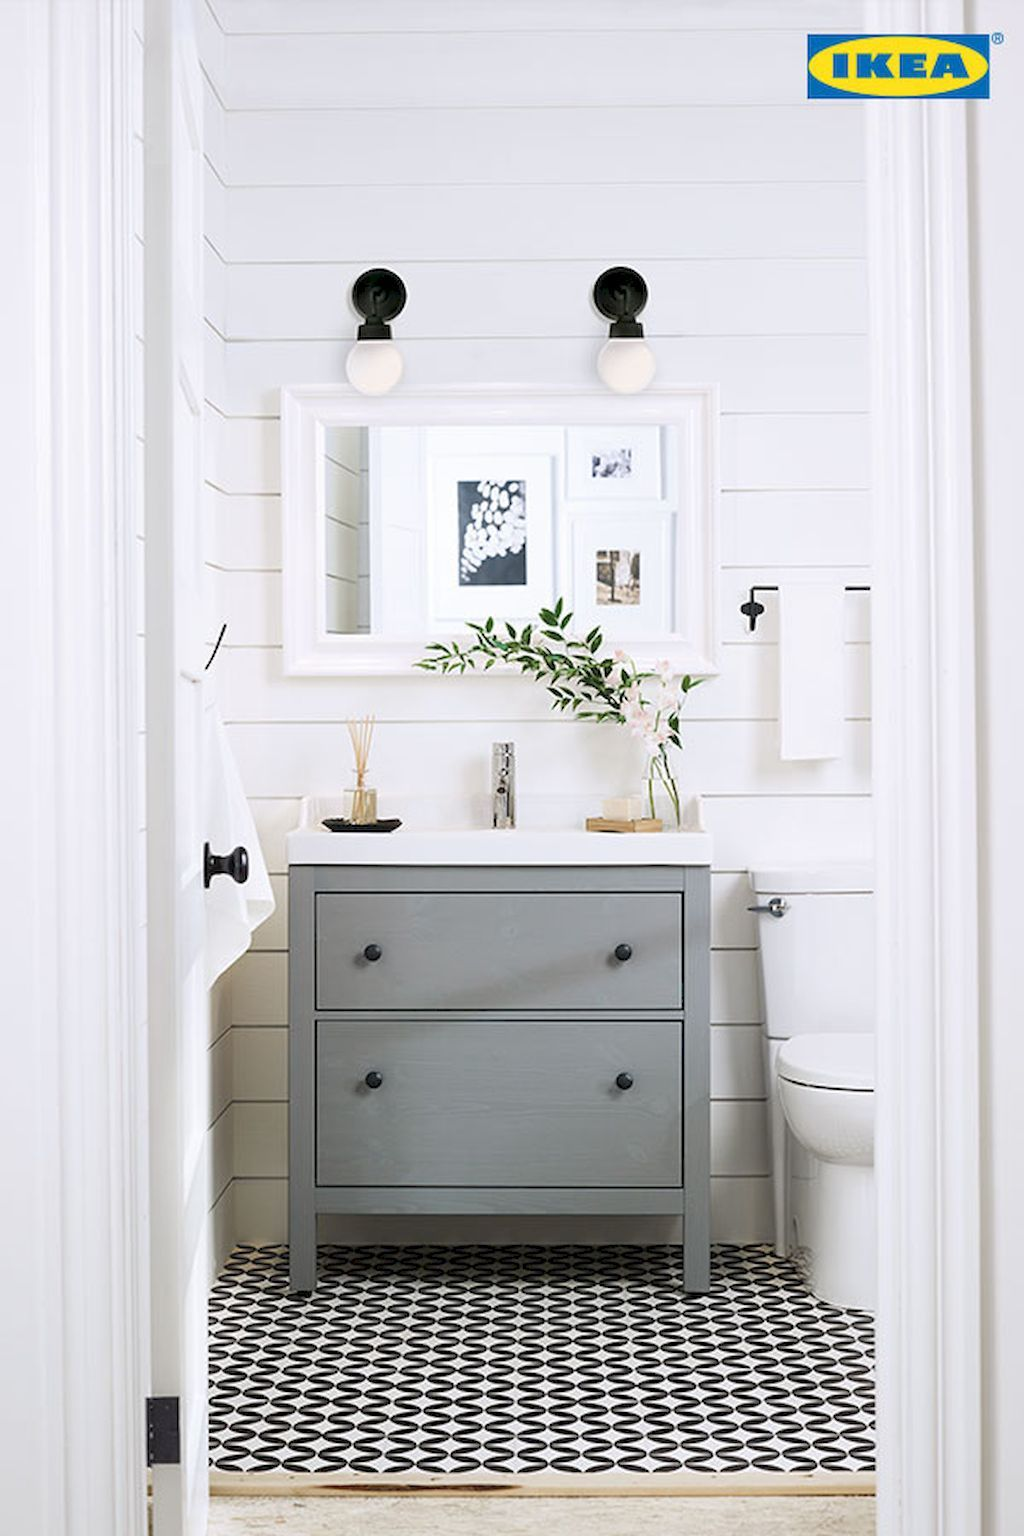 60 Cool Farmhouse Powder Room Design Ideas With Rustic | dream house ...